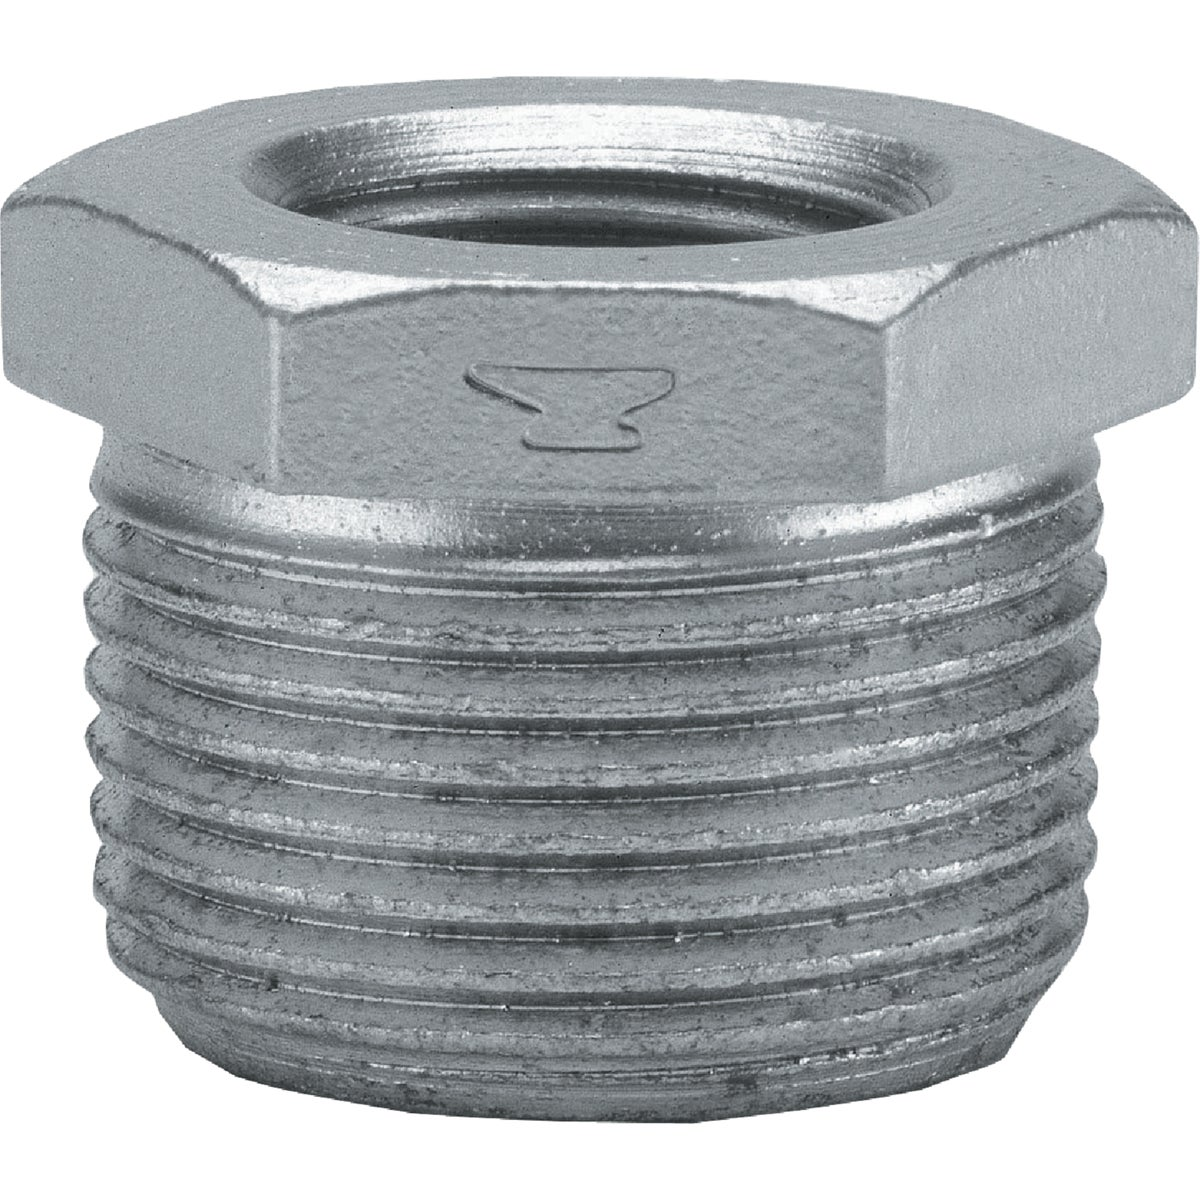 1X3/8 GALV BUSHING - 8700130753 by Anvil International